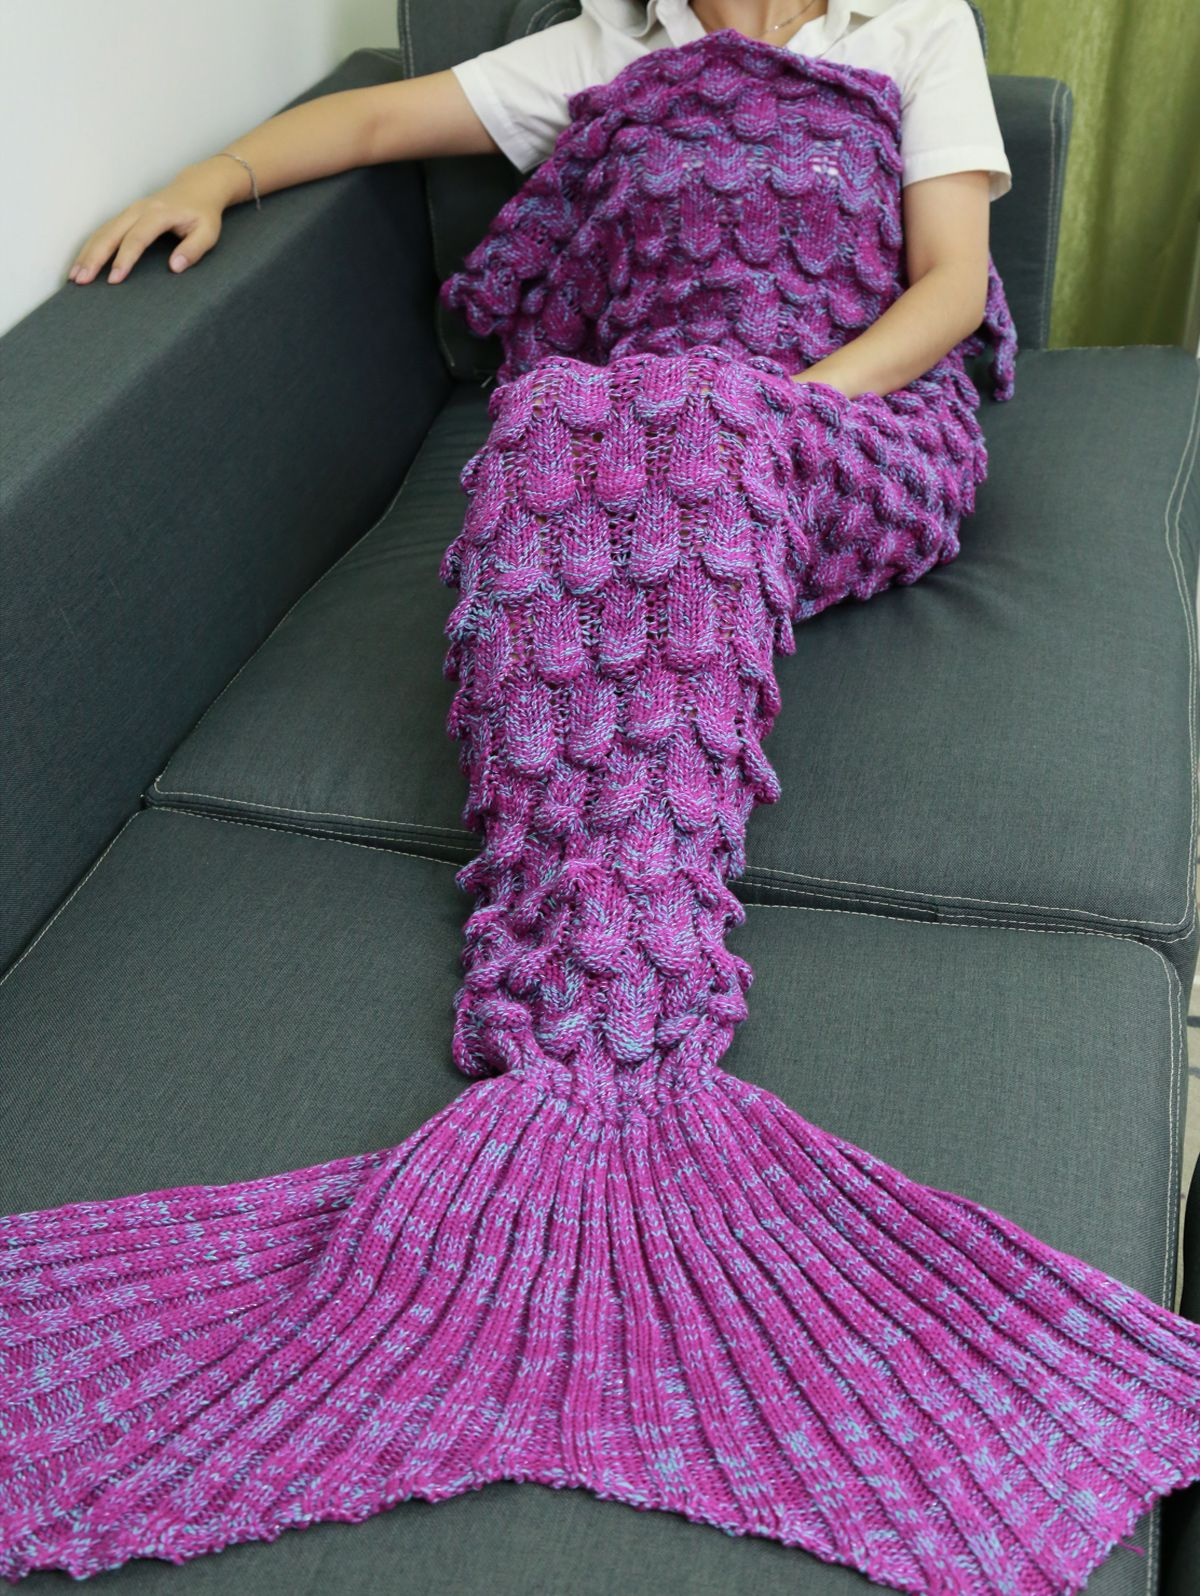 Soft Knitting Fish Scales Design Mermaid Tail Style Blanket Crafts